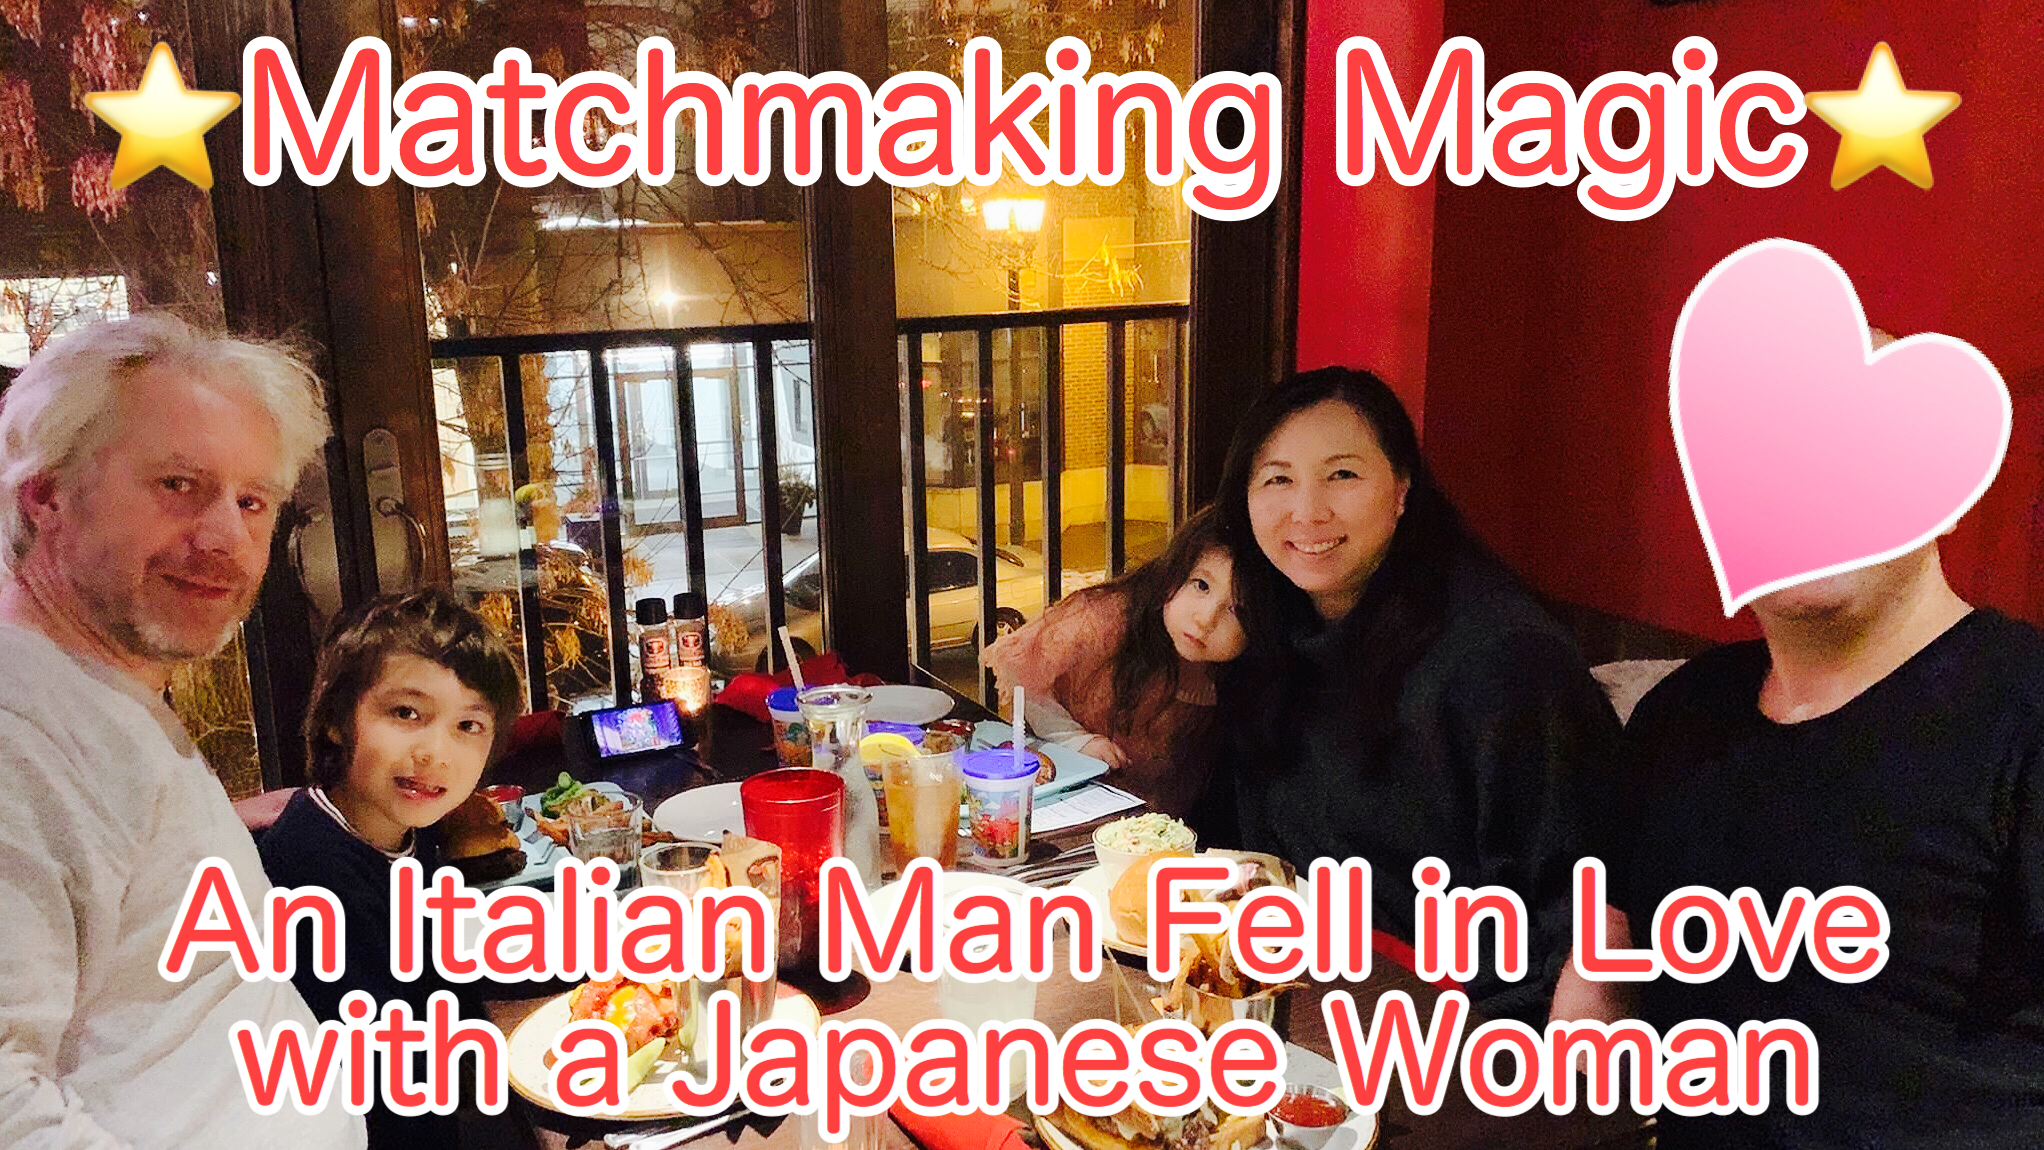 An Italian Man Fell in Love with a Japanese Woman